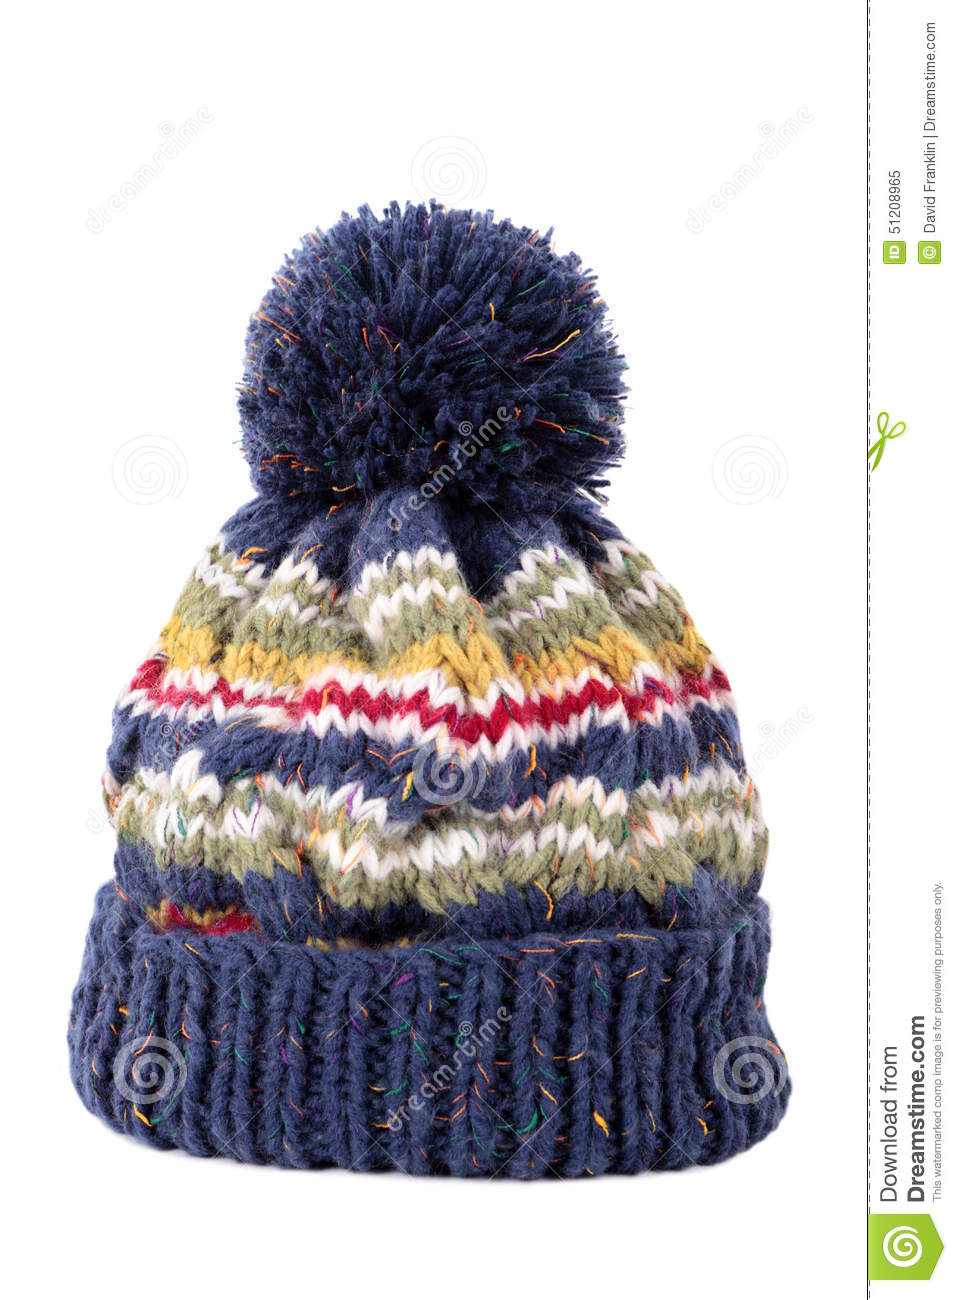 385c2bcebff Blue Winter Knit Hat Isolated On White Background Stock Image ...